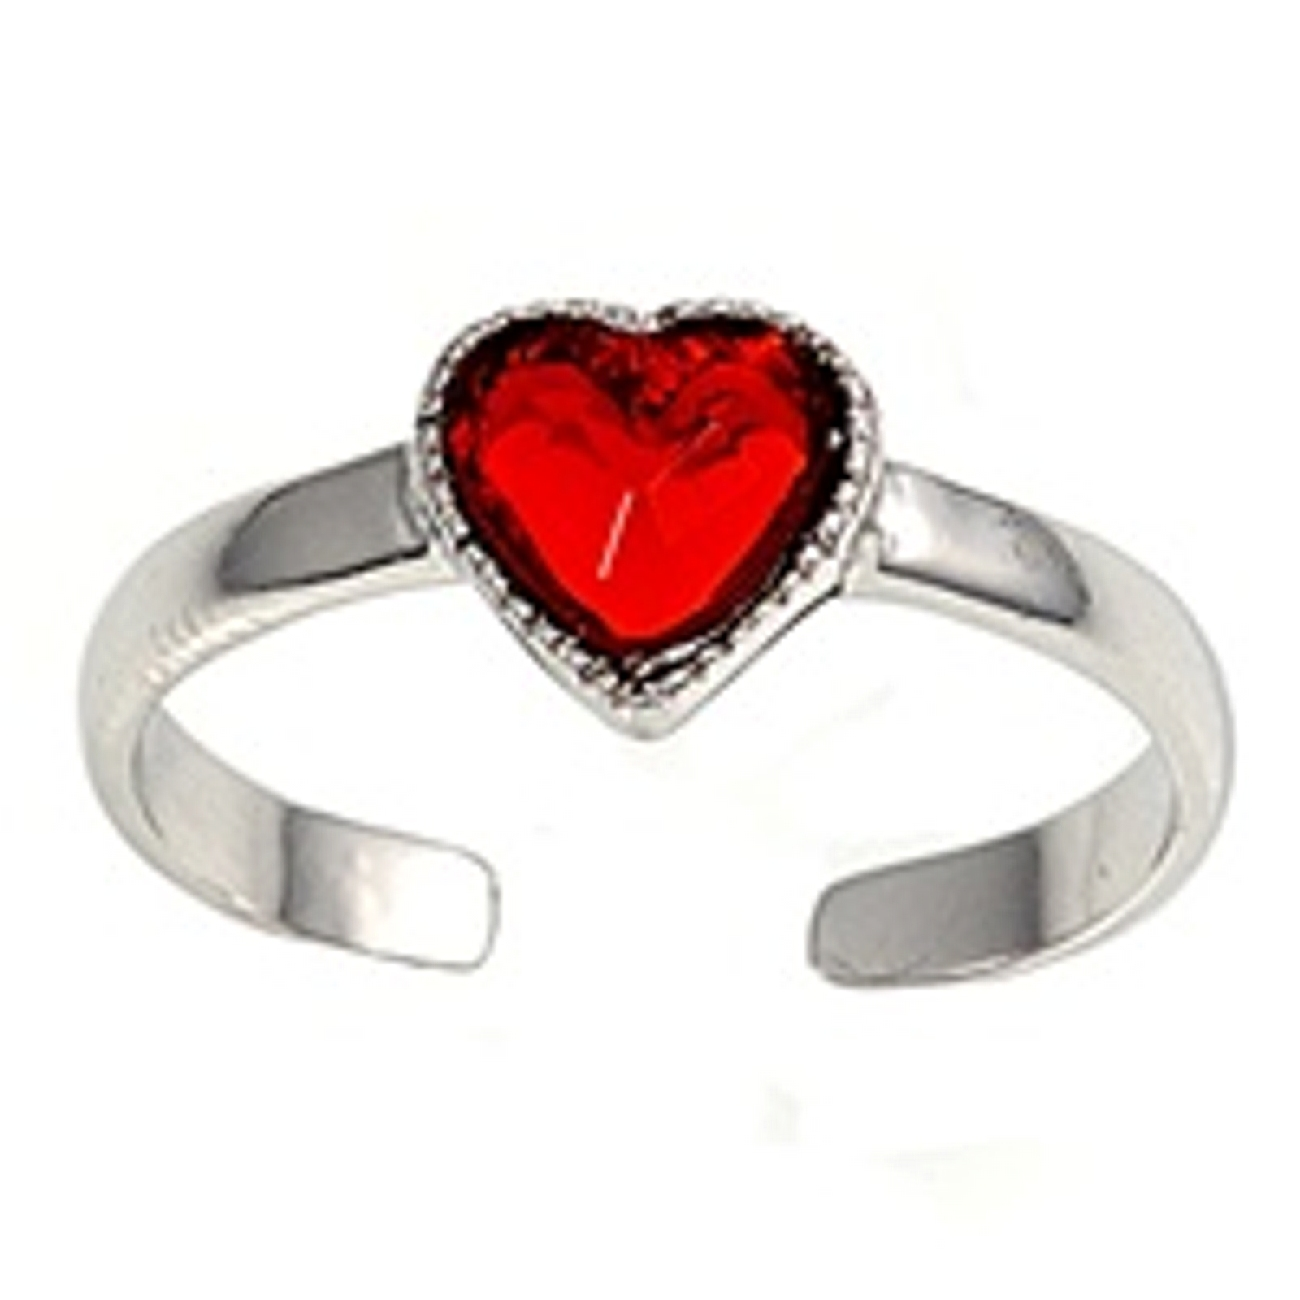 Red Cubic Zirconia Heart Adjustable Toe Ring